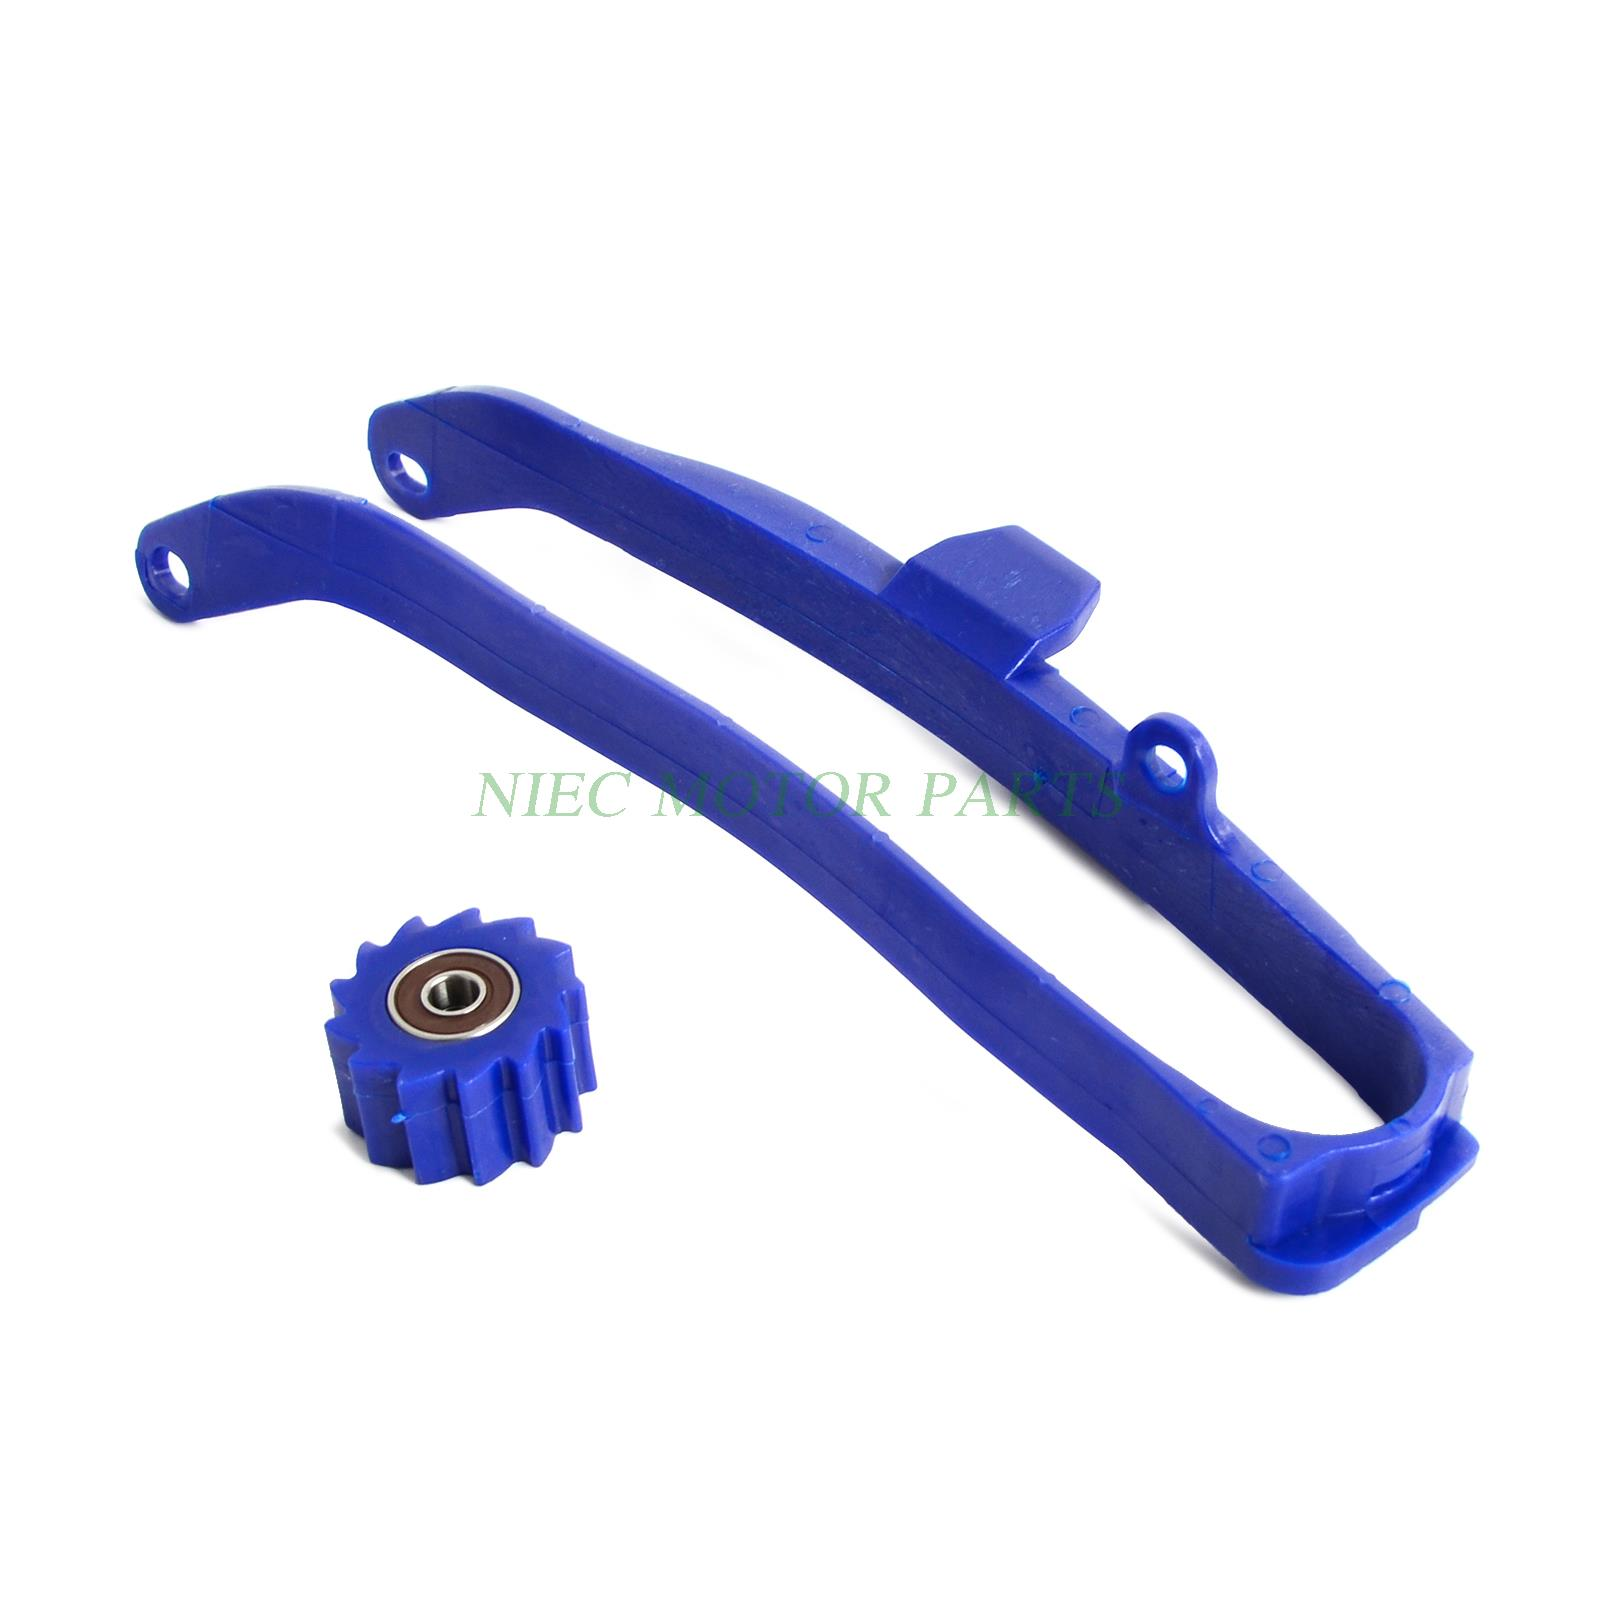 motorcycle chain slider swingarm guide guide lower roller for yamaha yamaha yz250f yz450f. Black Bedroom Furniture Sets. Home Design Ideas